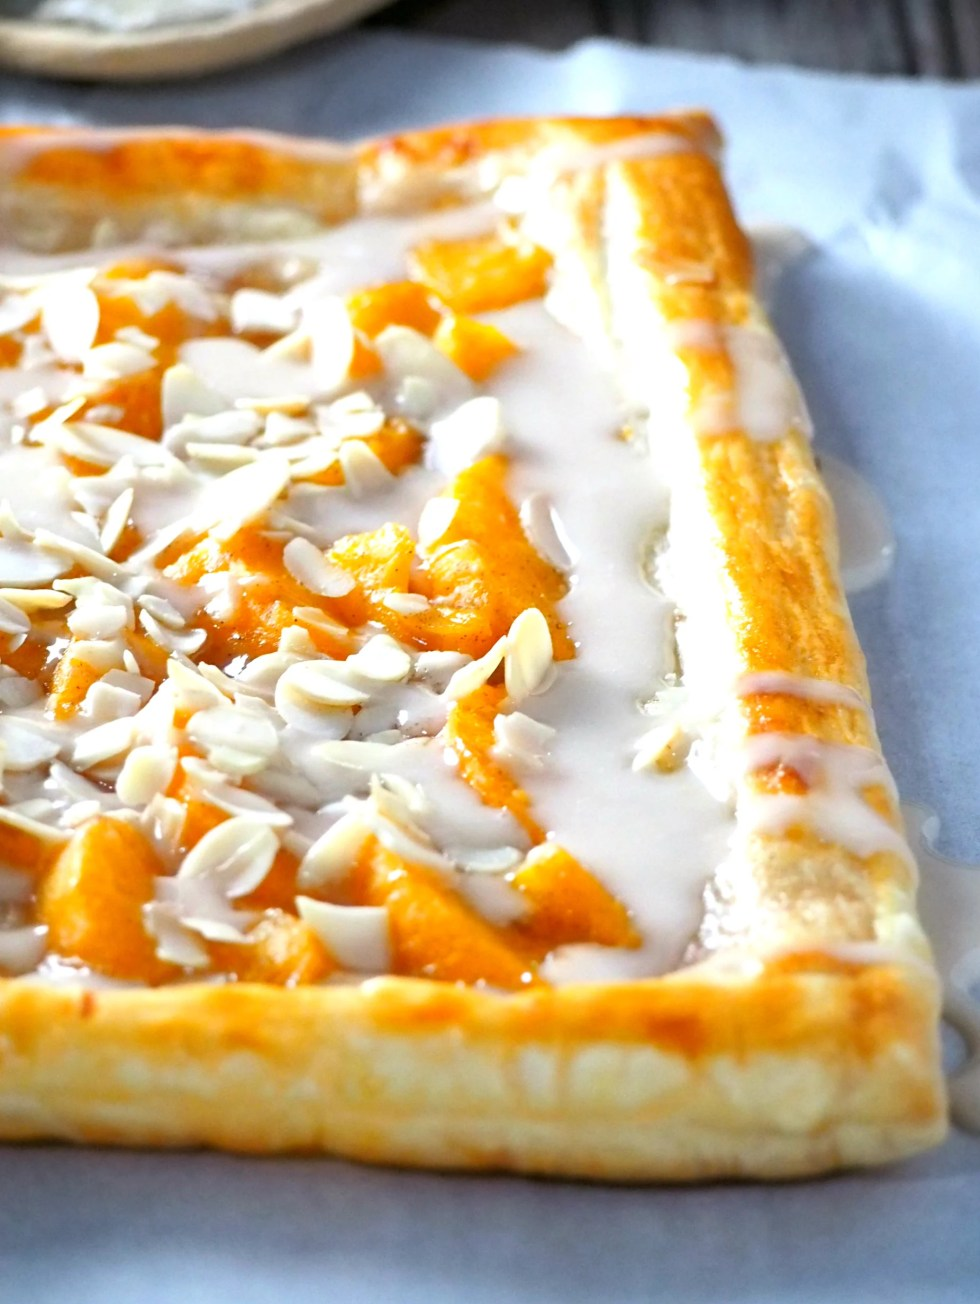 A simple but delicious dessert, you can make this Peach tart in no time and still yield an elegant and delicious pastry. Add this easy peach dessert to your list of quick dessert recipes and you are sure to make this over and over again.